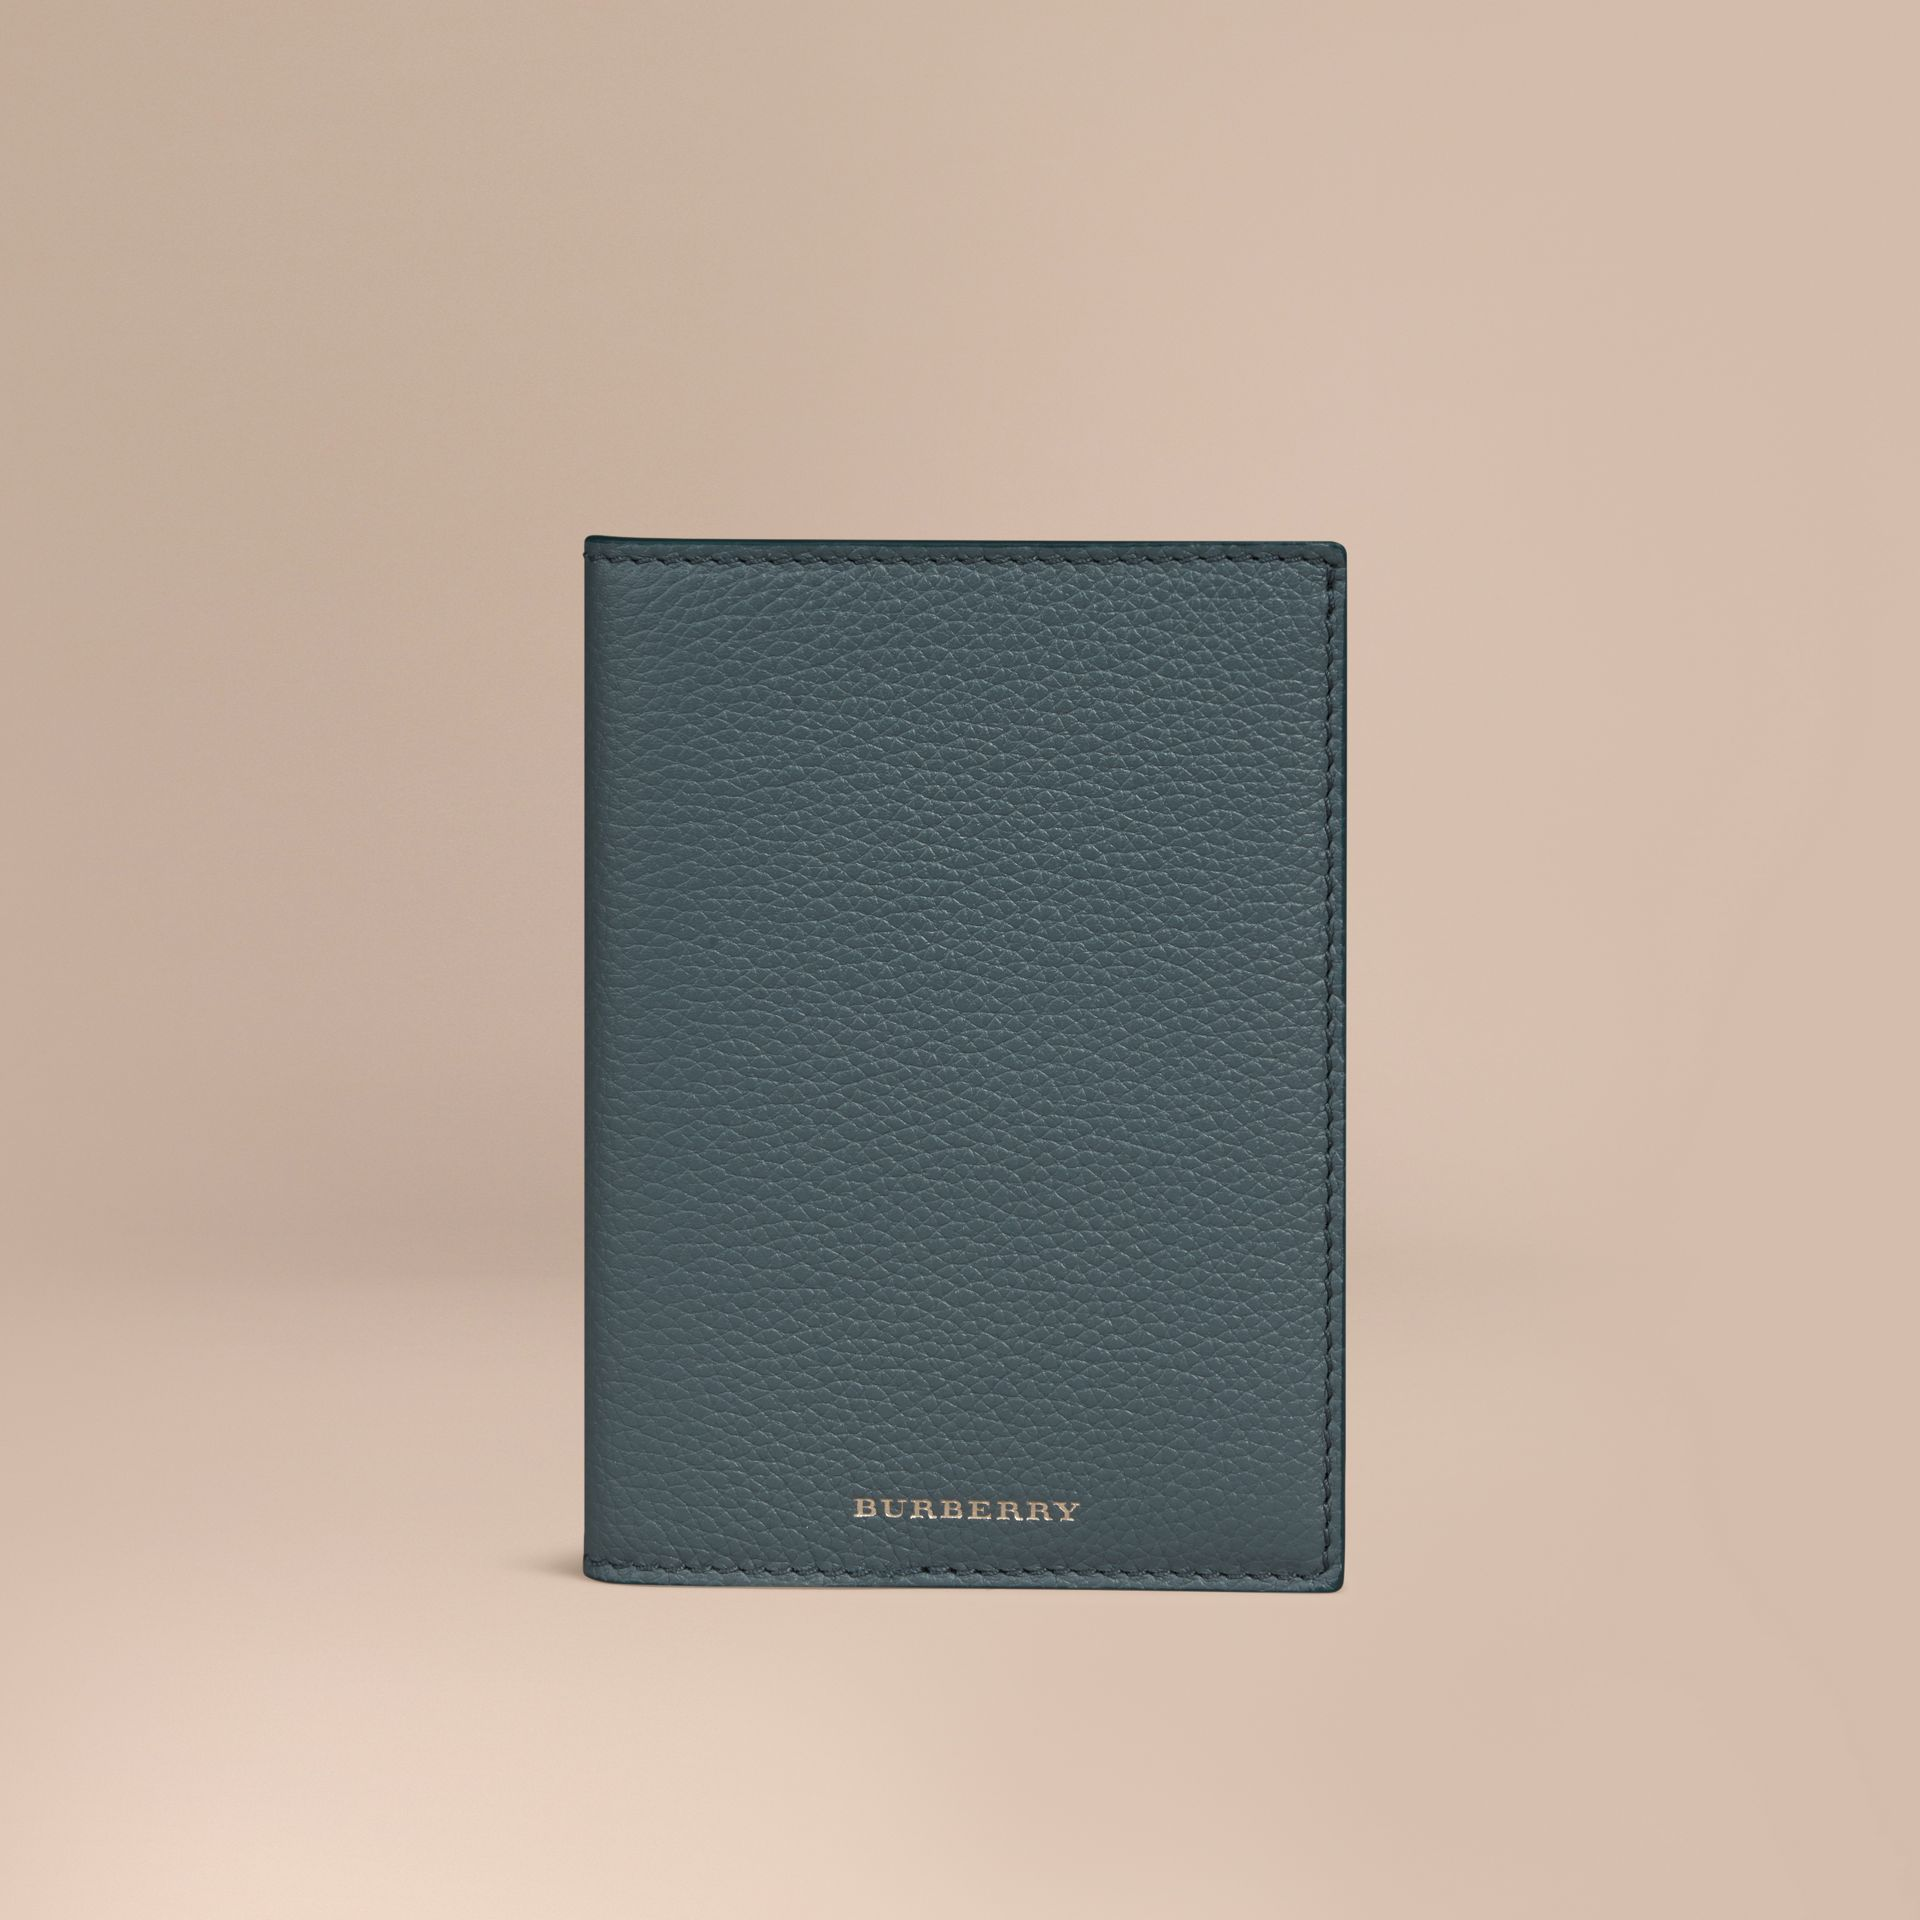 Grainy Leather Passport Cover in Dusty Teal - gallery image 1